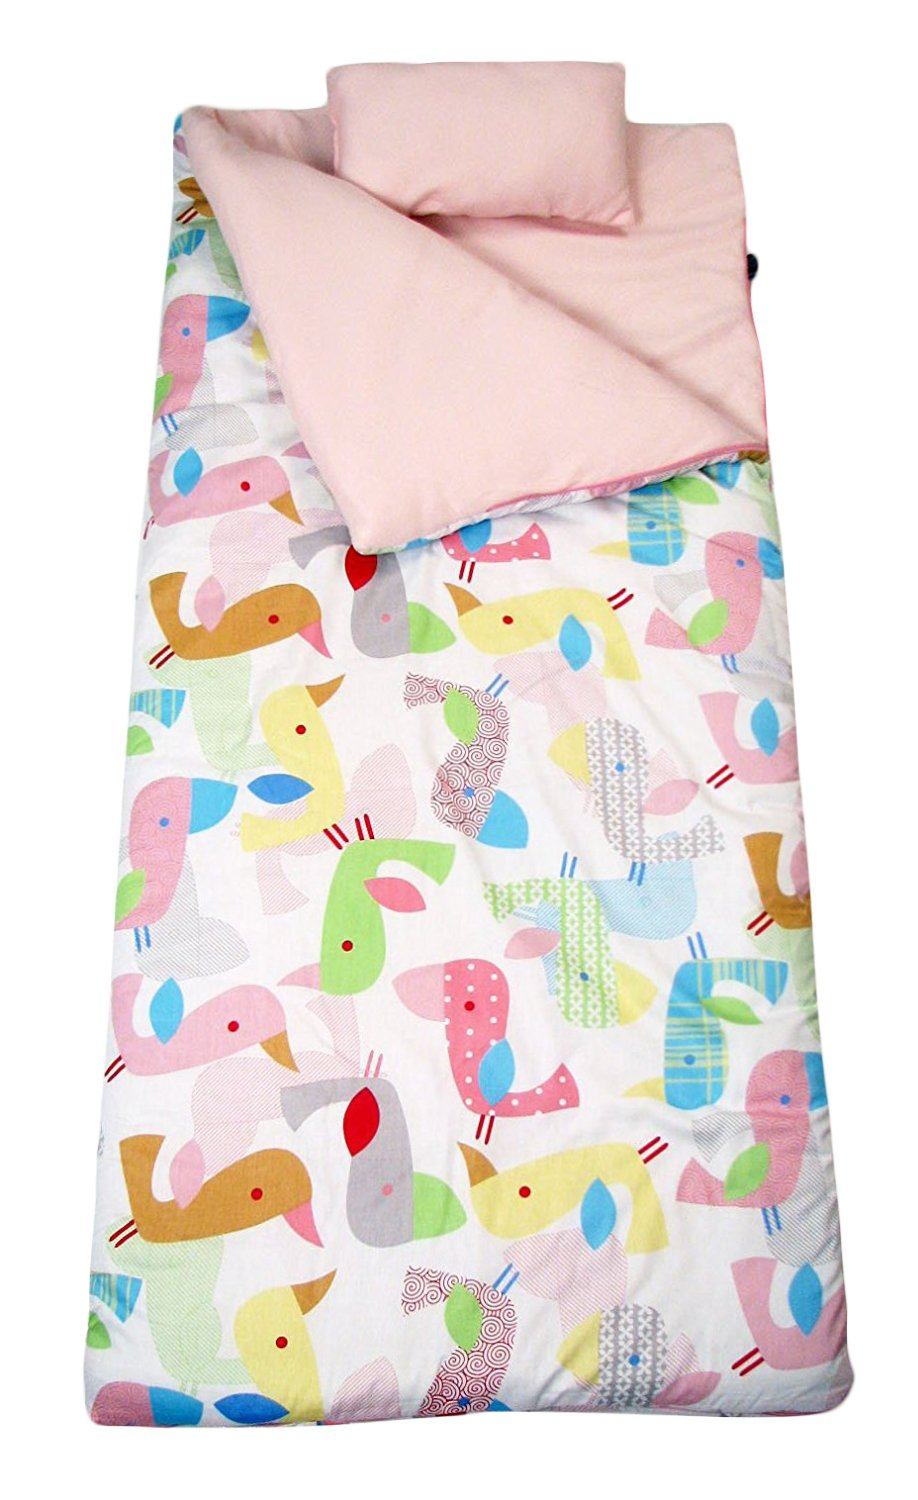 SoHo kids Sweet Flamingo Love children sleeping slumber bag with pillow and carrying case lightweight foldable for sleep over,Pink